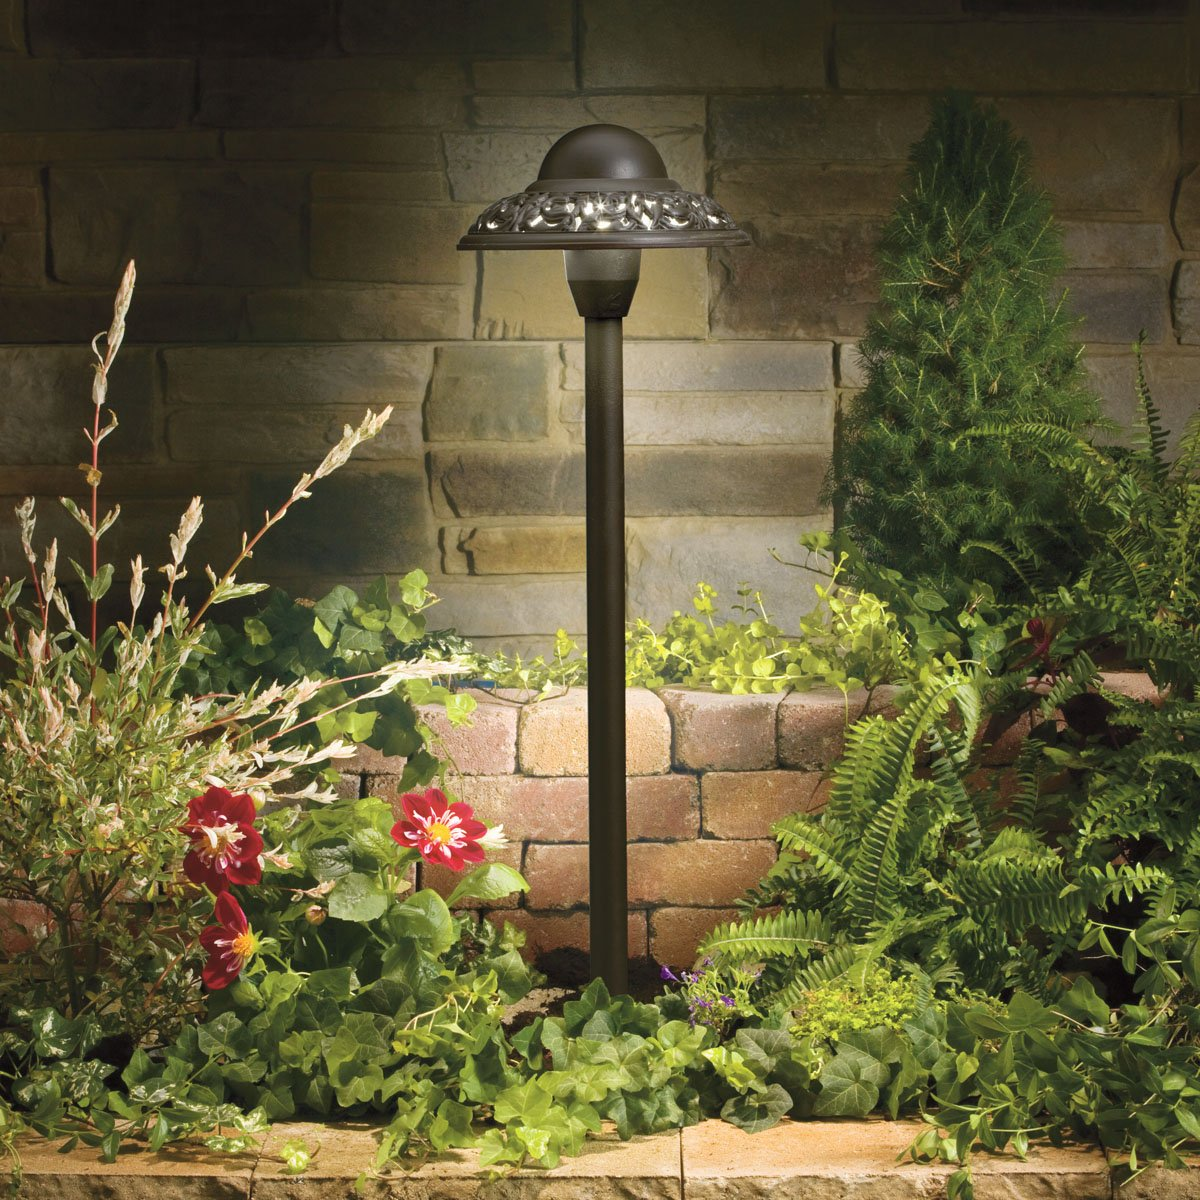 Kichler 15457AZT Path & Spread 1-Light 12V, Textured Architectural Bronze by KICHLER